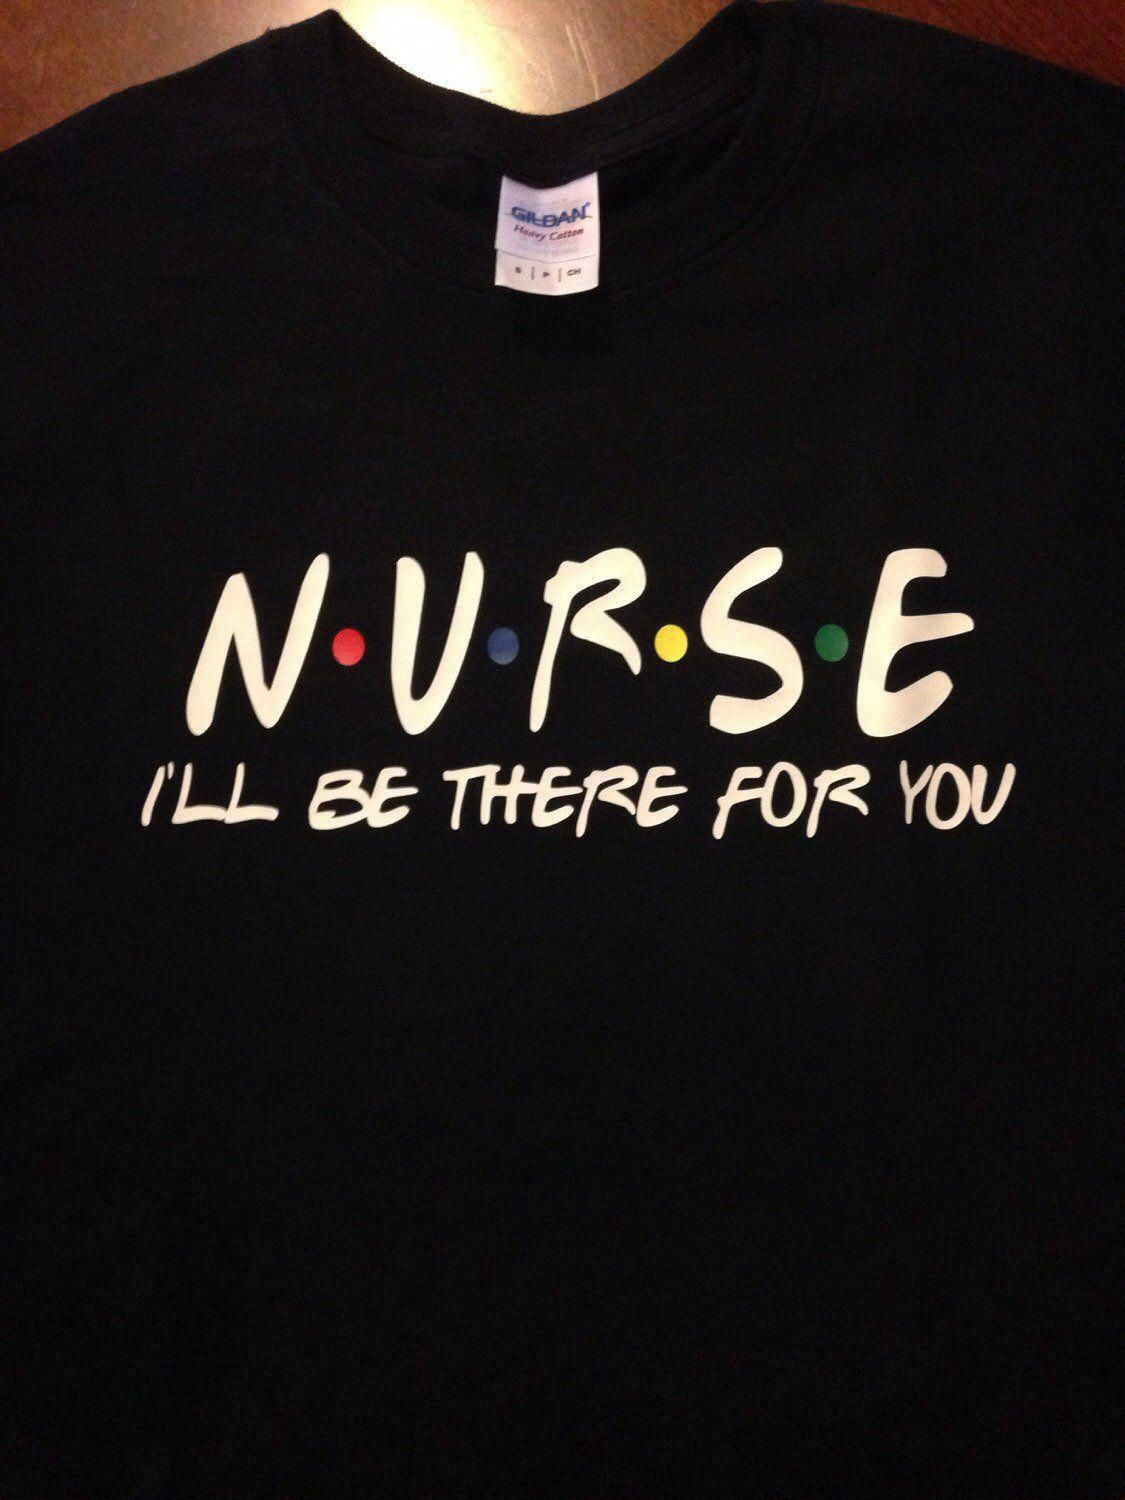 Pin on Blessed to be a nurse.